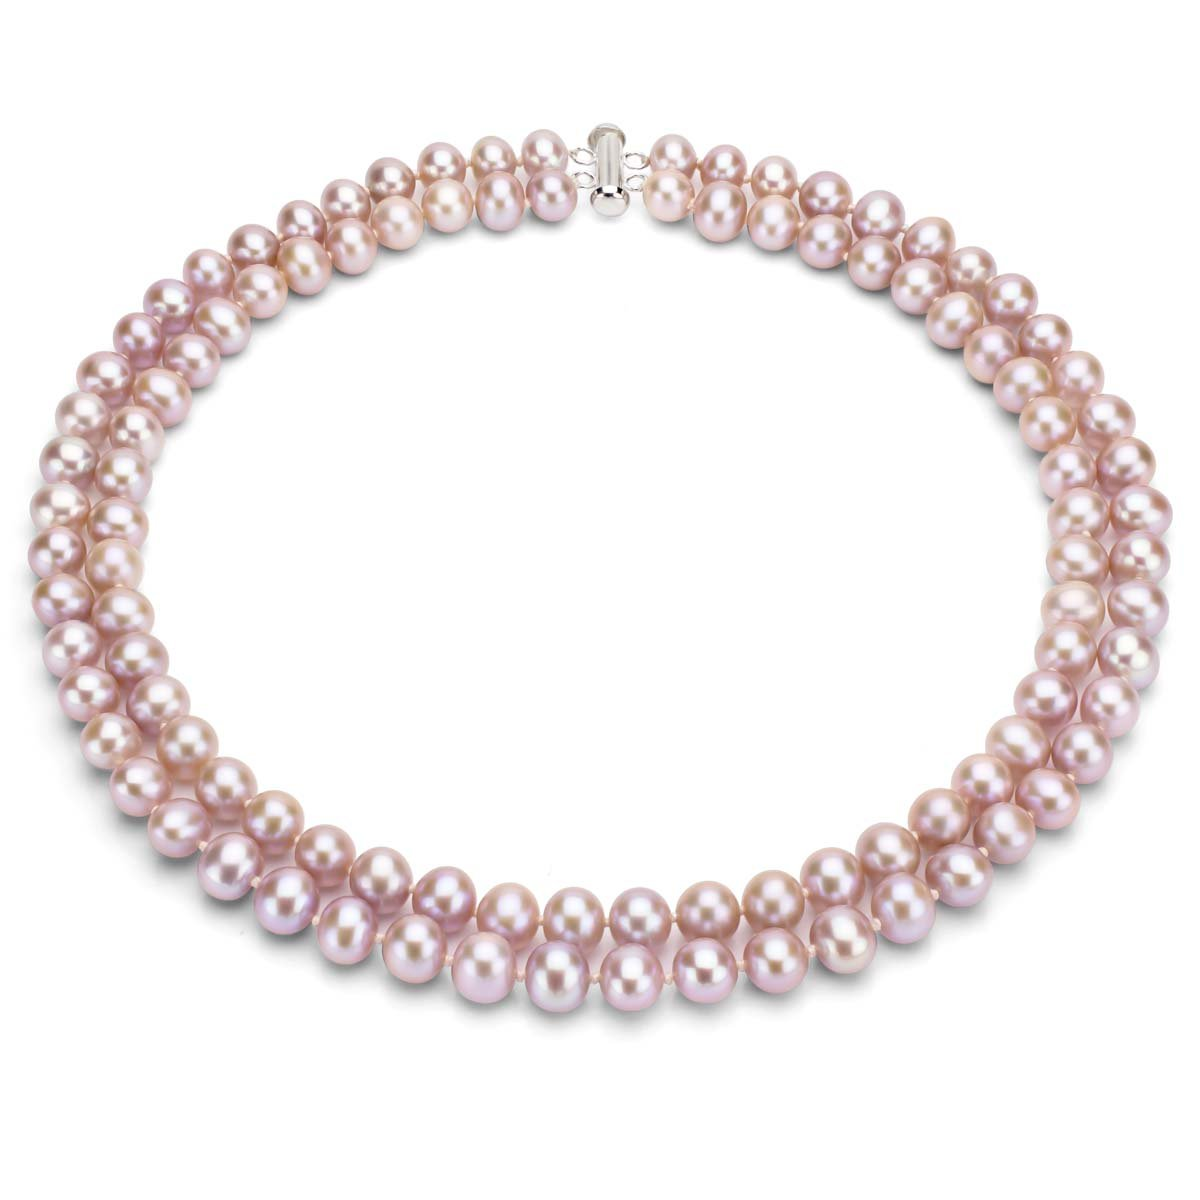 Sterling Silver 2-rows 7-7.5mm Pink Freshwater Cultured High Luster Pearl Necklace, 17''